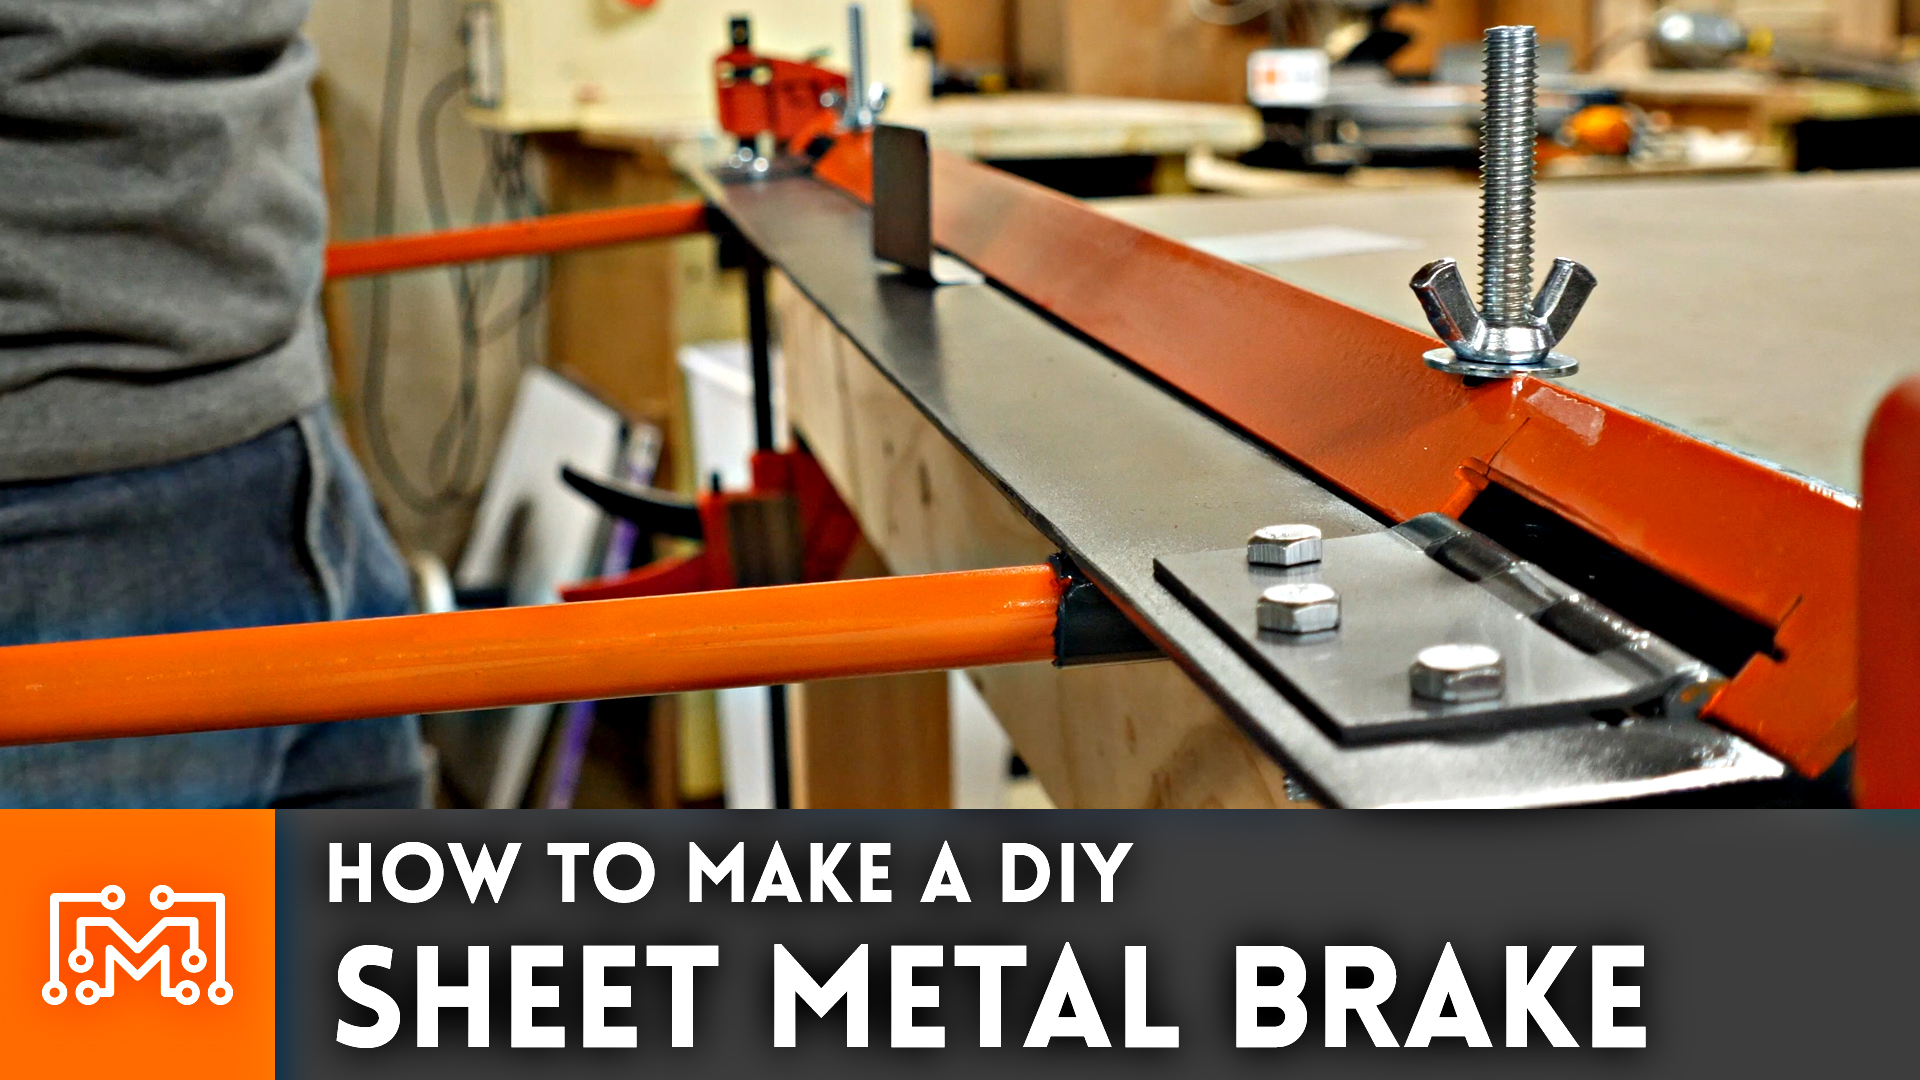 How To Make A Metal Brake For Folding Sheet Metal I